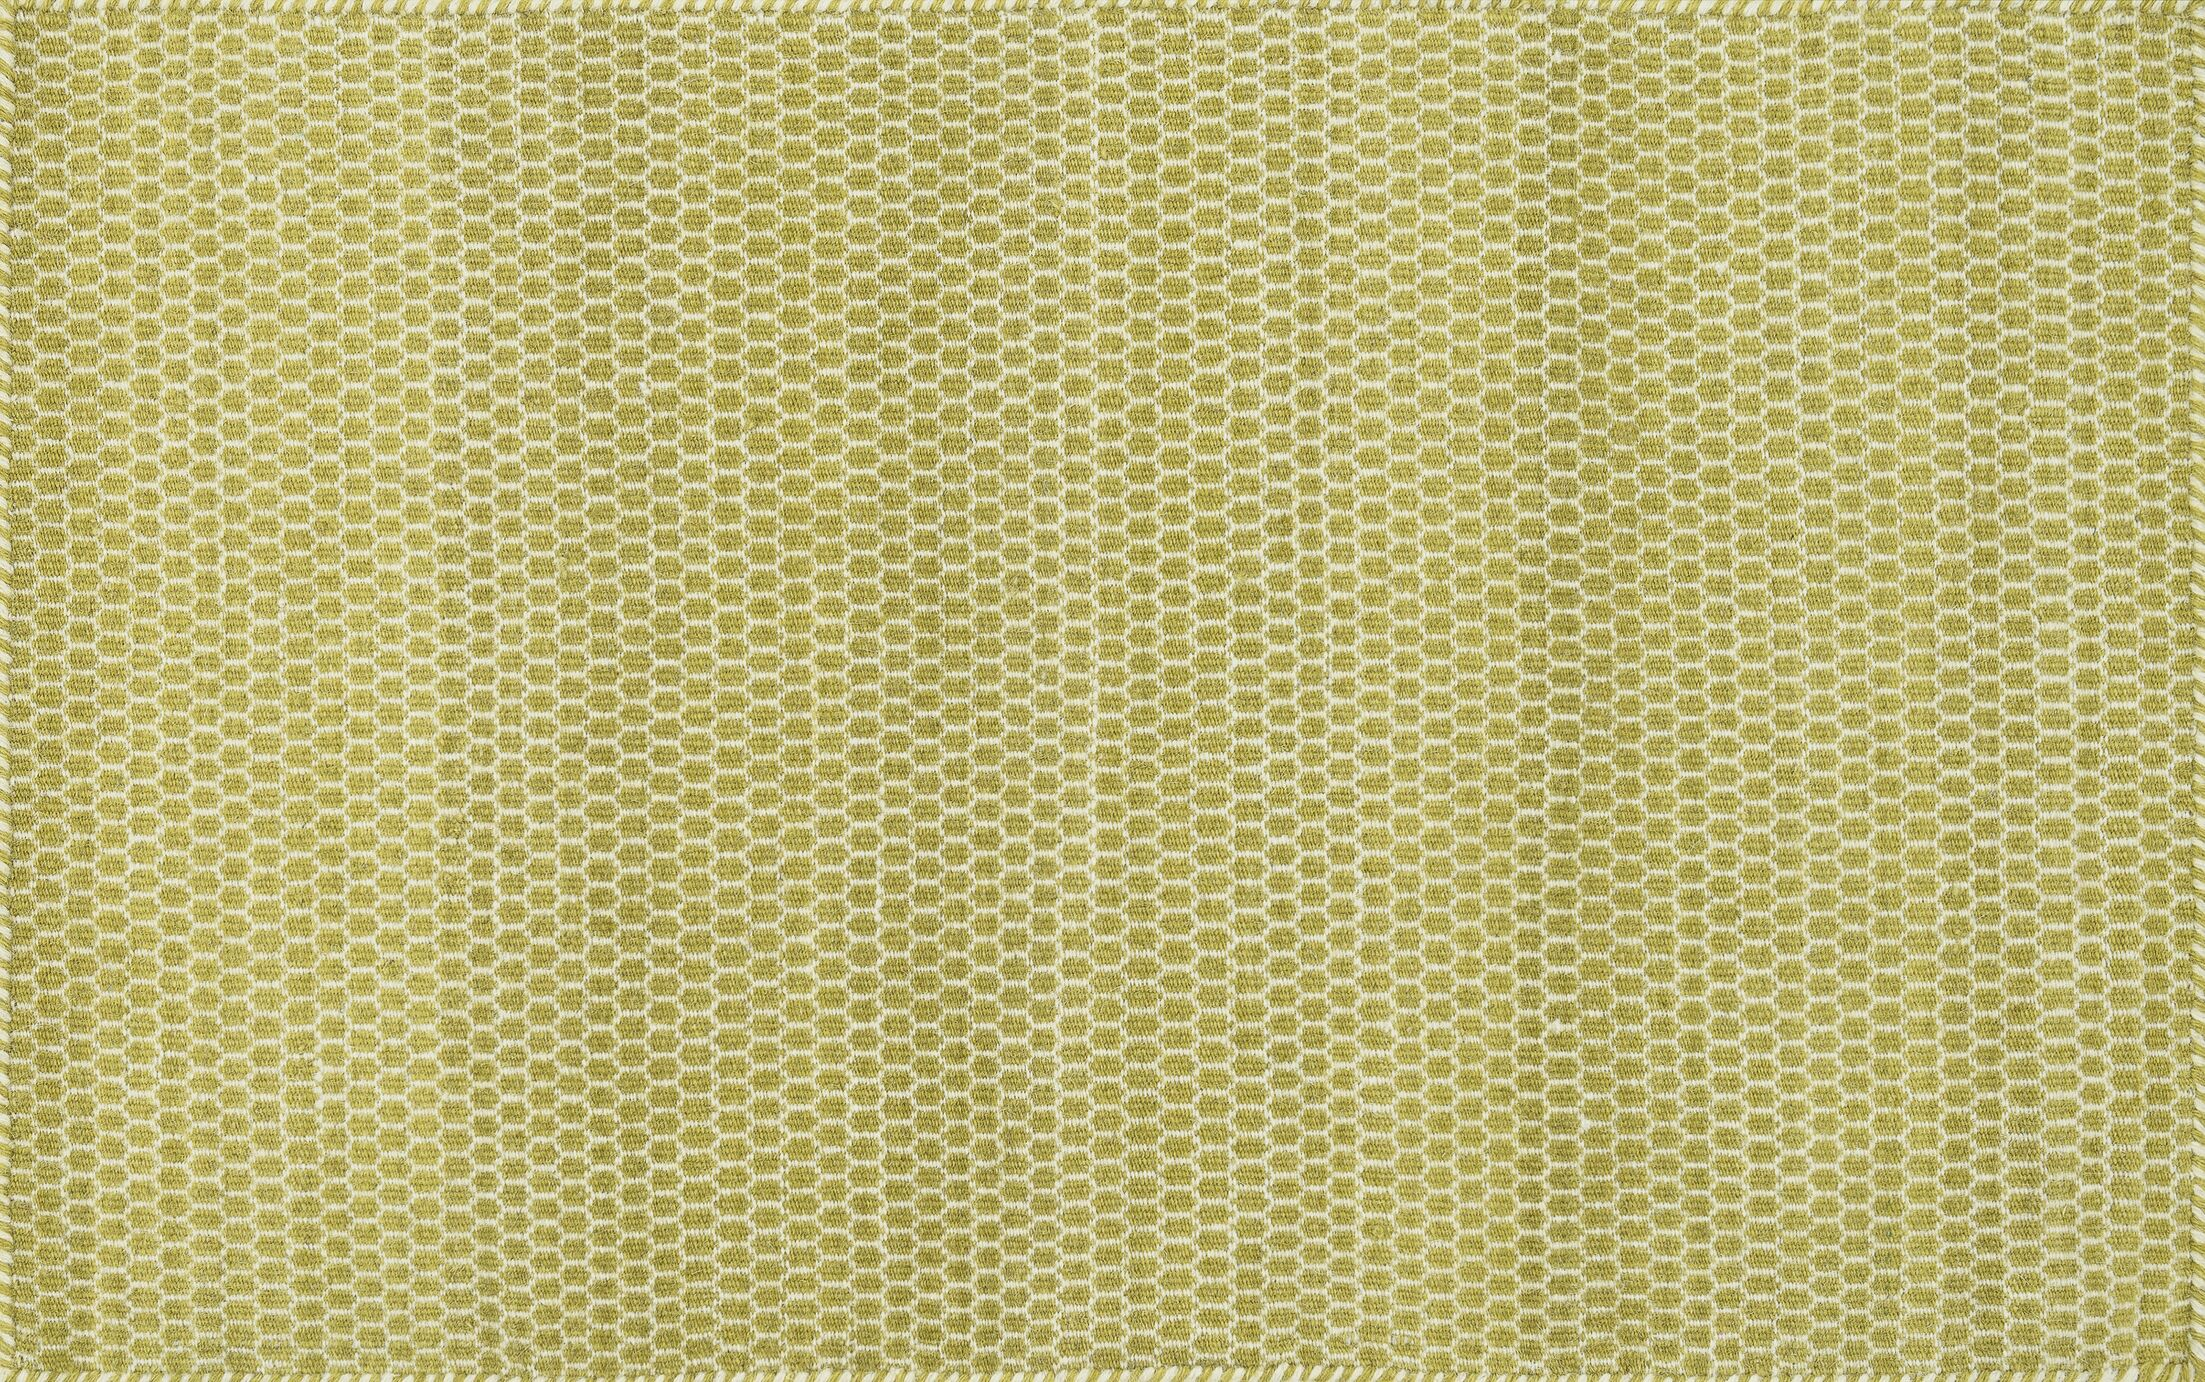 Quays Hand-Woven Citron Gold/Yellow Area Rug Rug Size: Rectangle 2'3